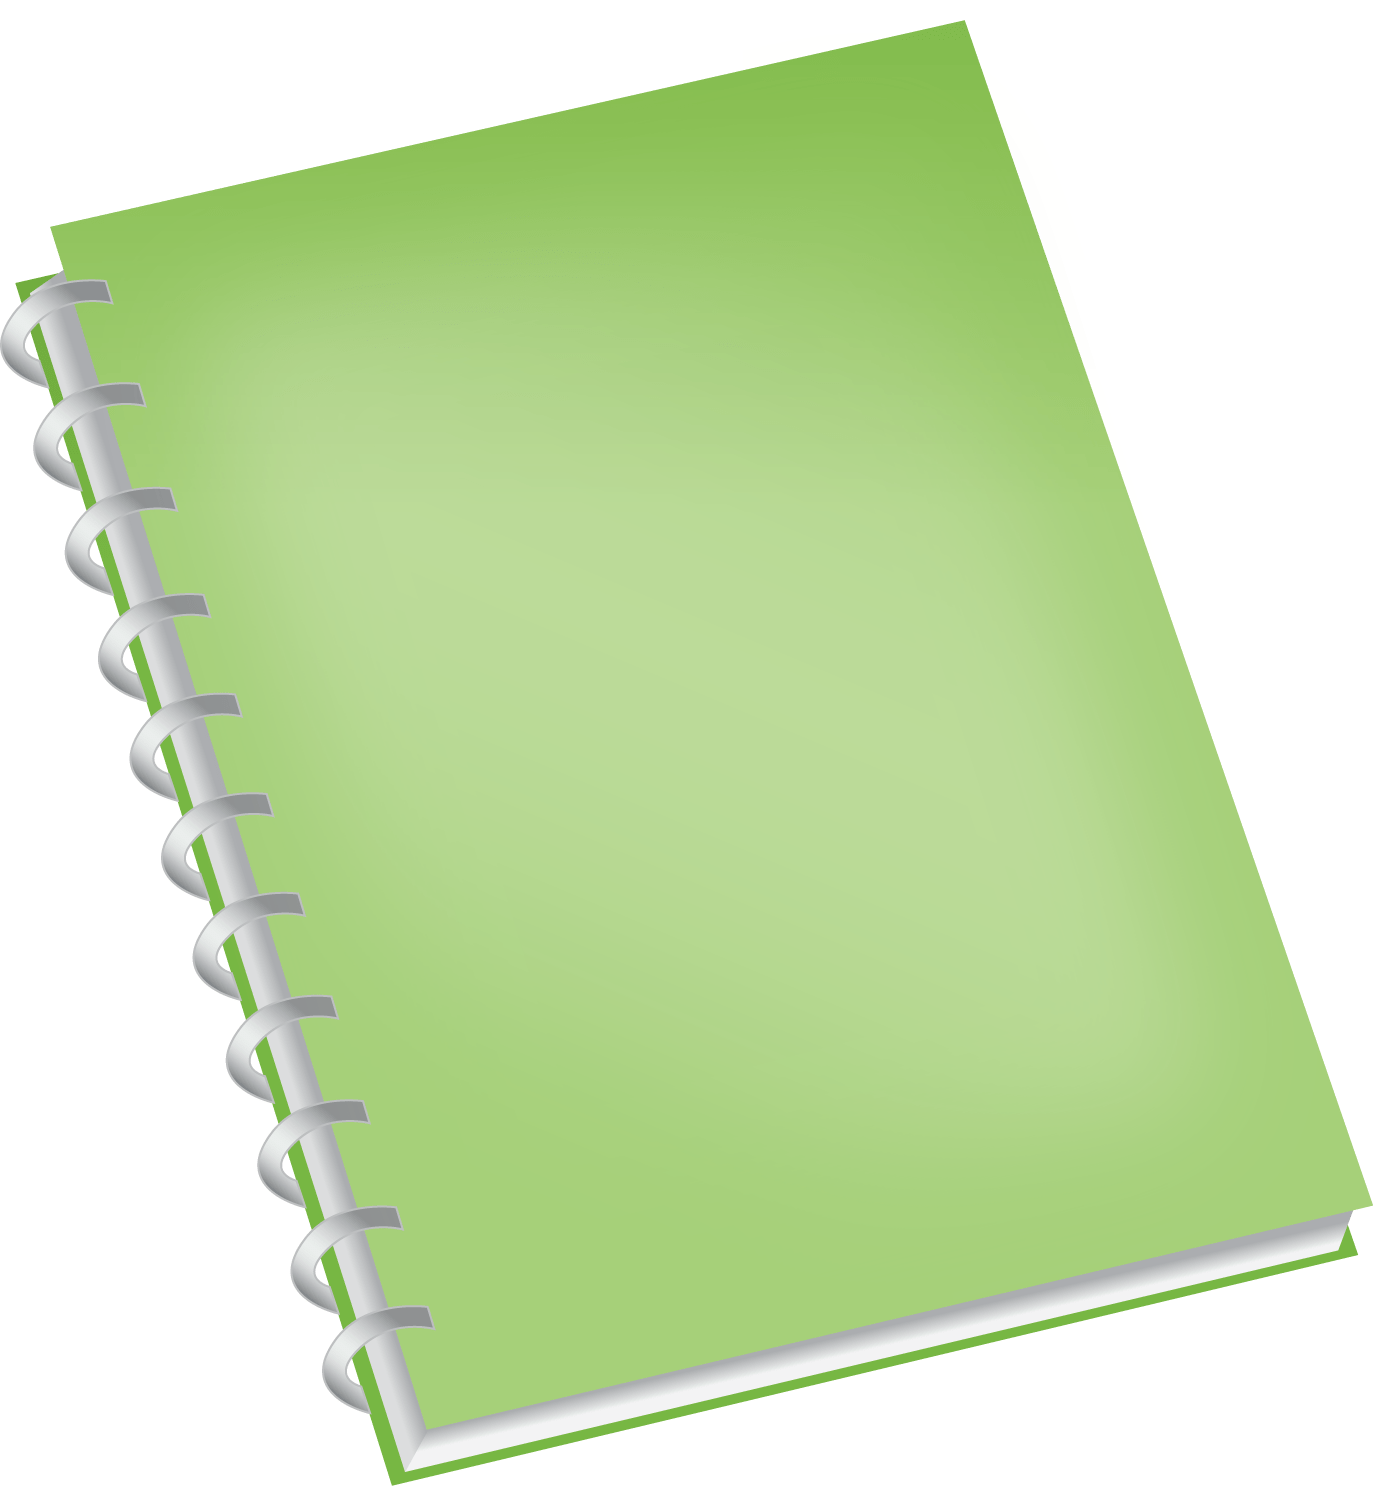 Green transparent stickpng objects. Notebook png banner royalty free download